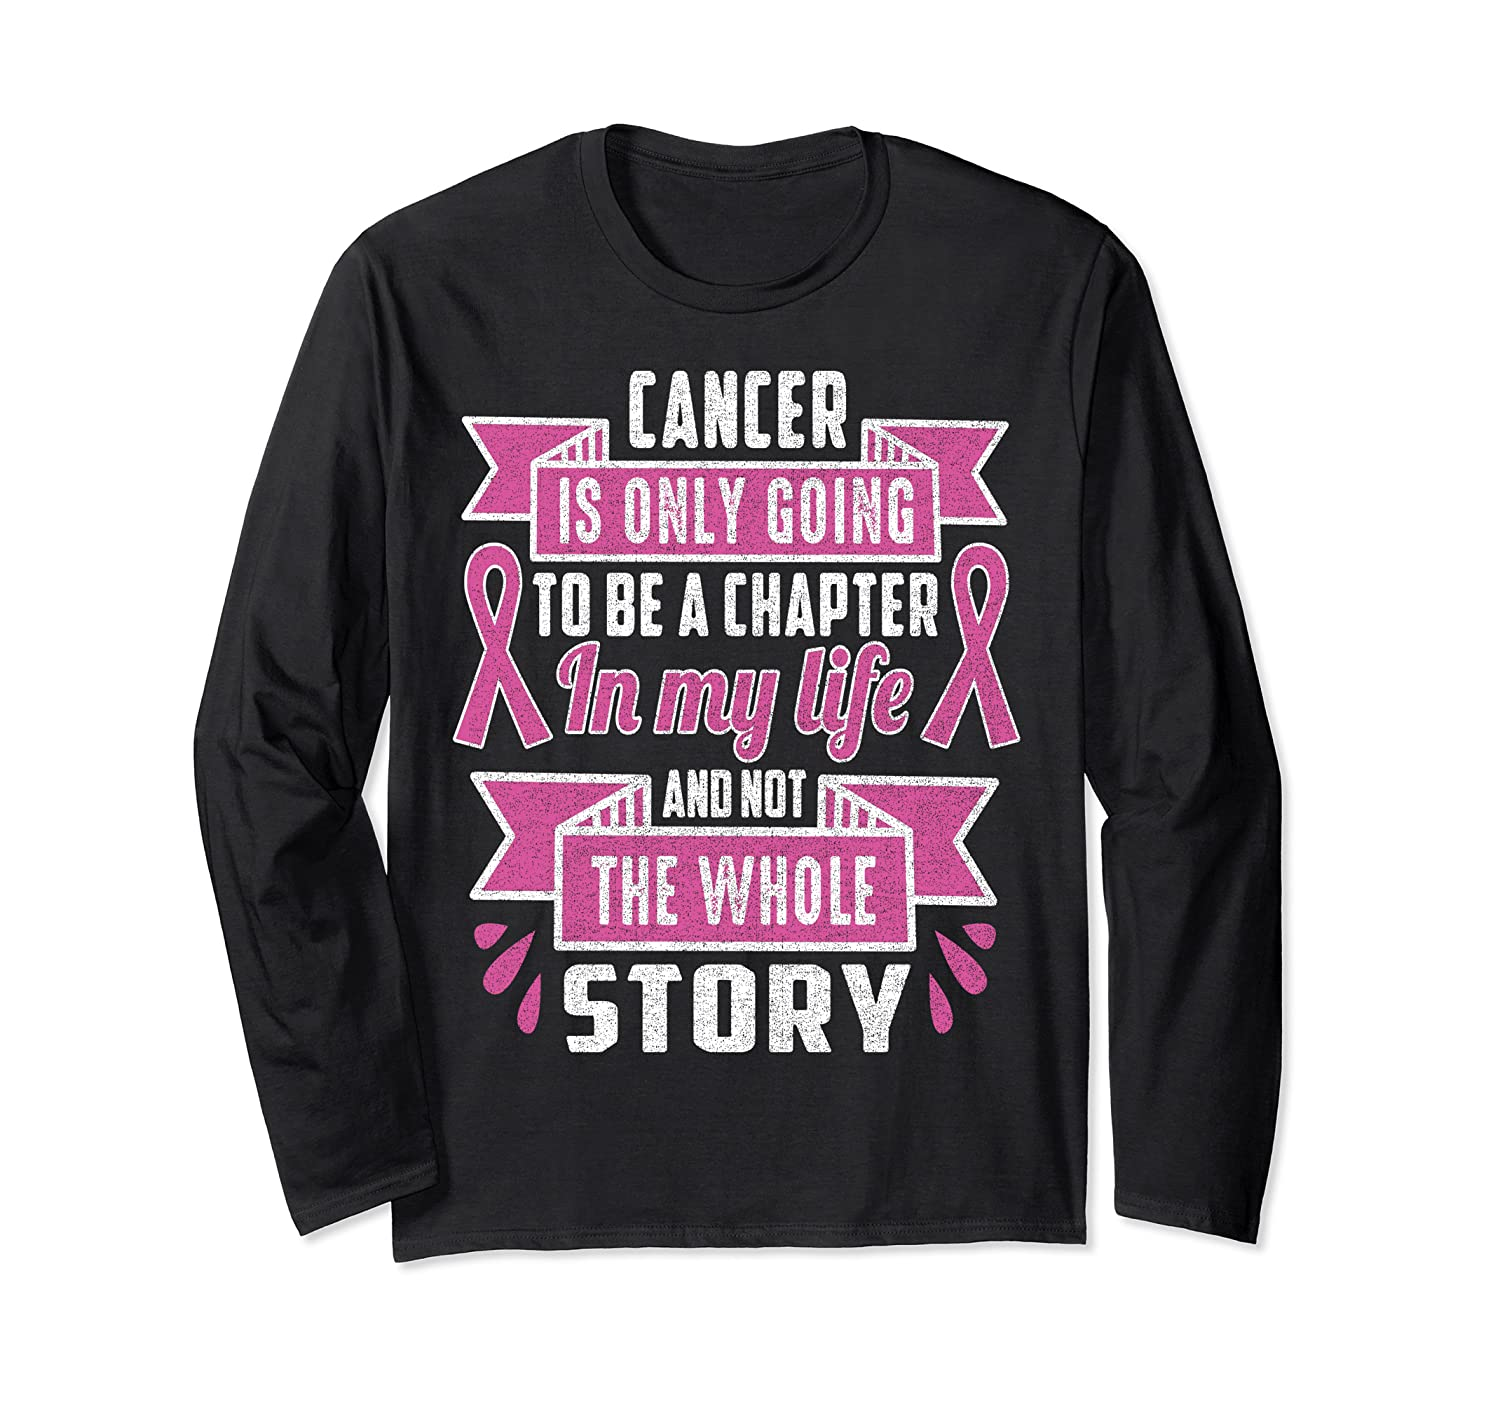 Breast Cancer Awareness Month Pink Ribbon Warrior T T Shirt